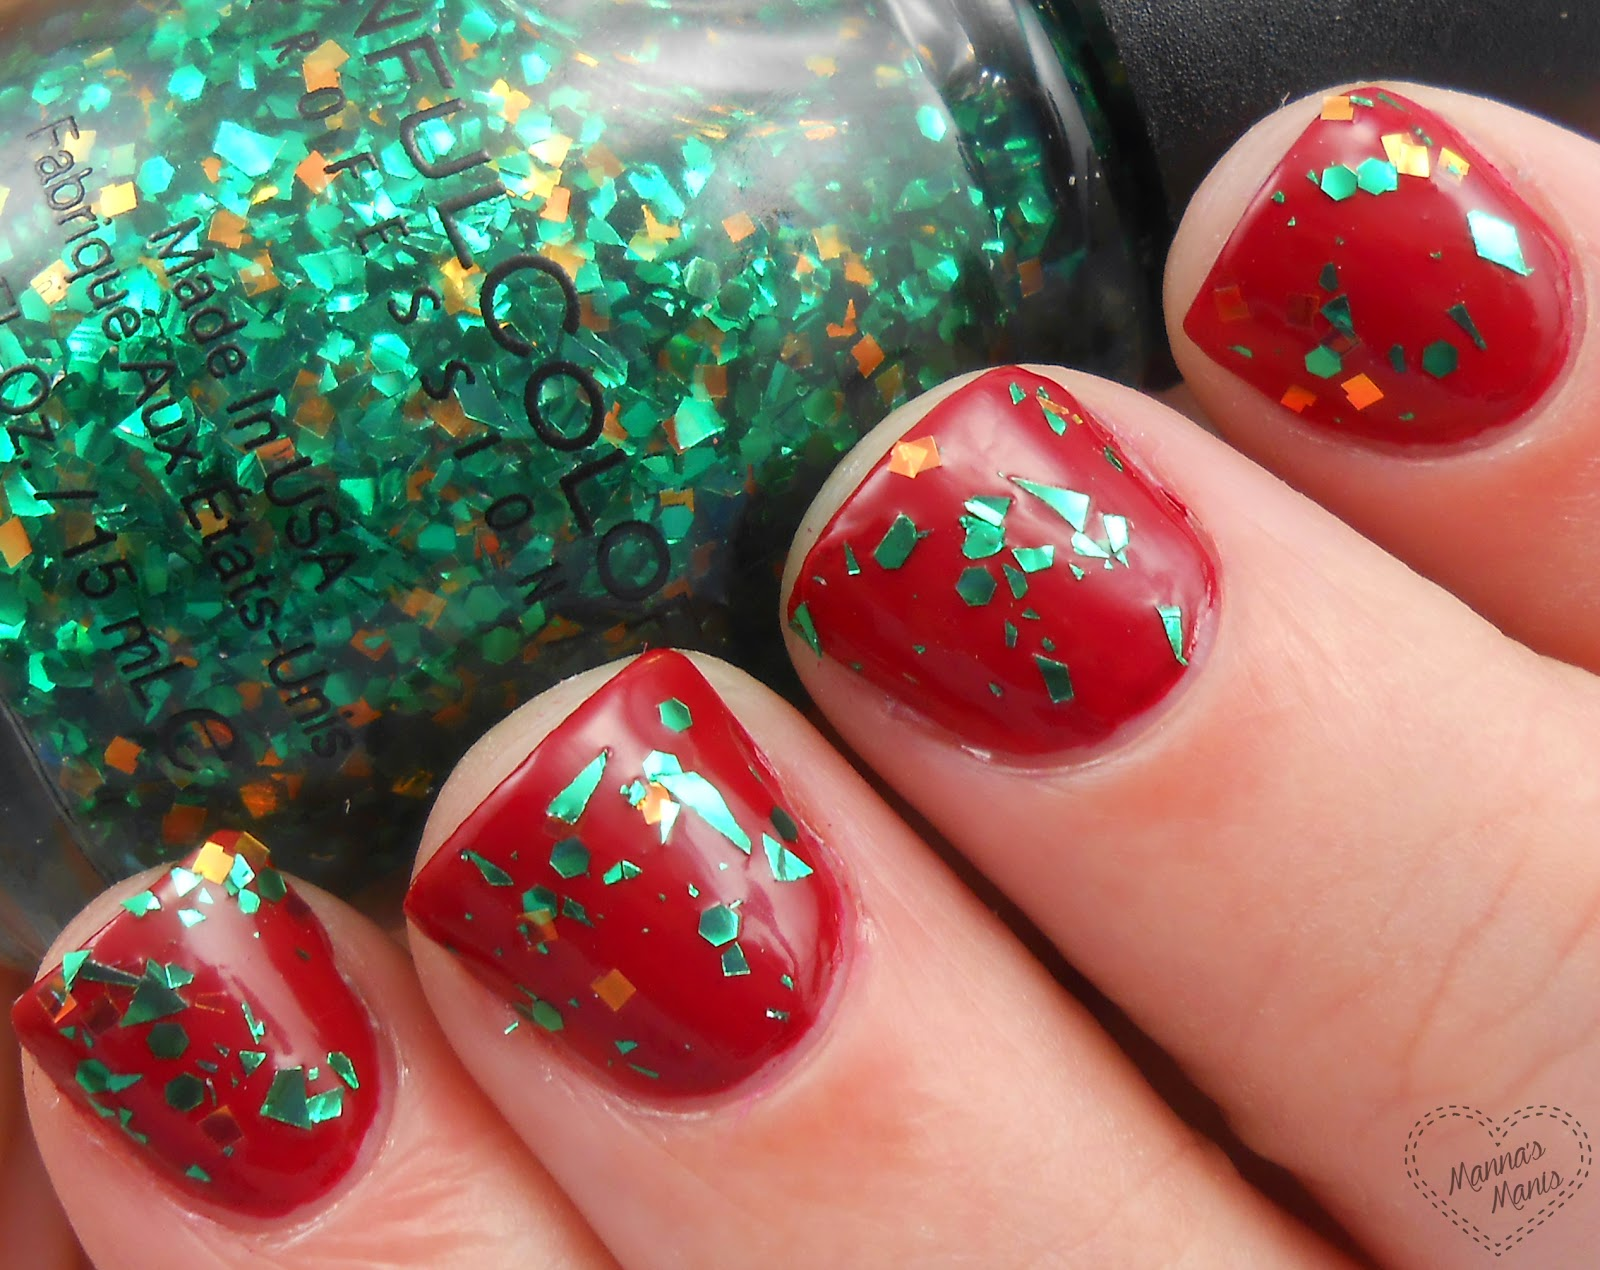 sinful colors galax-sea, a multi shaped green and gold glitter nail polish